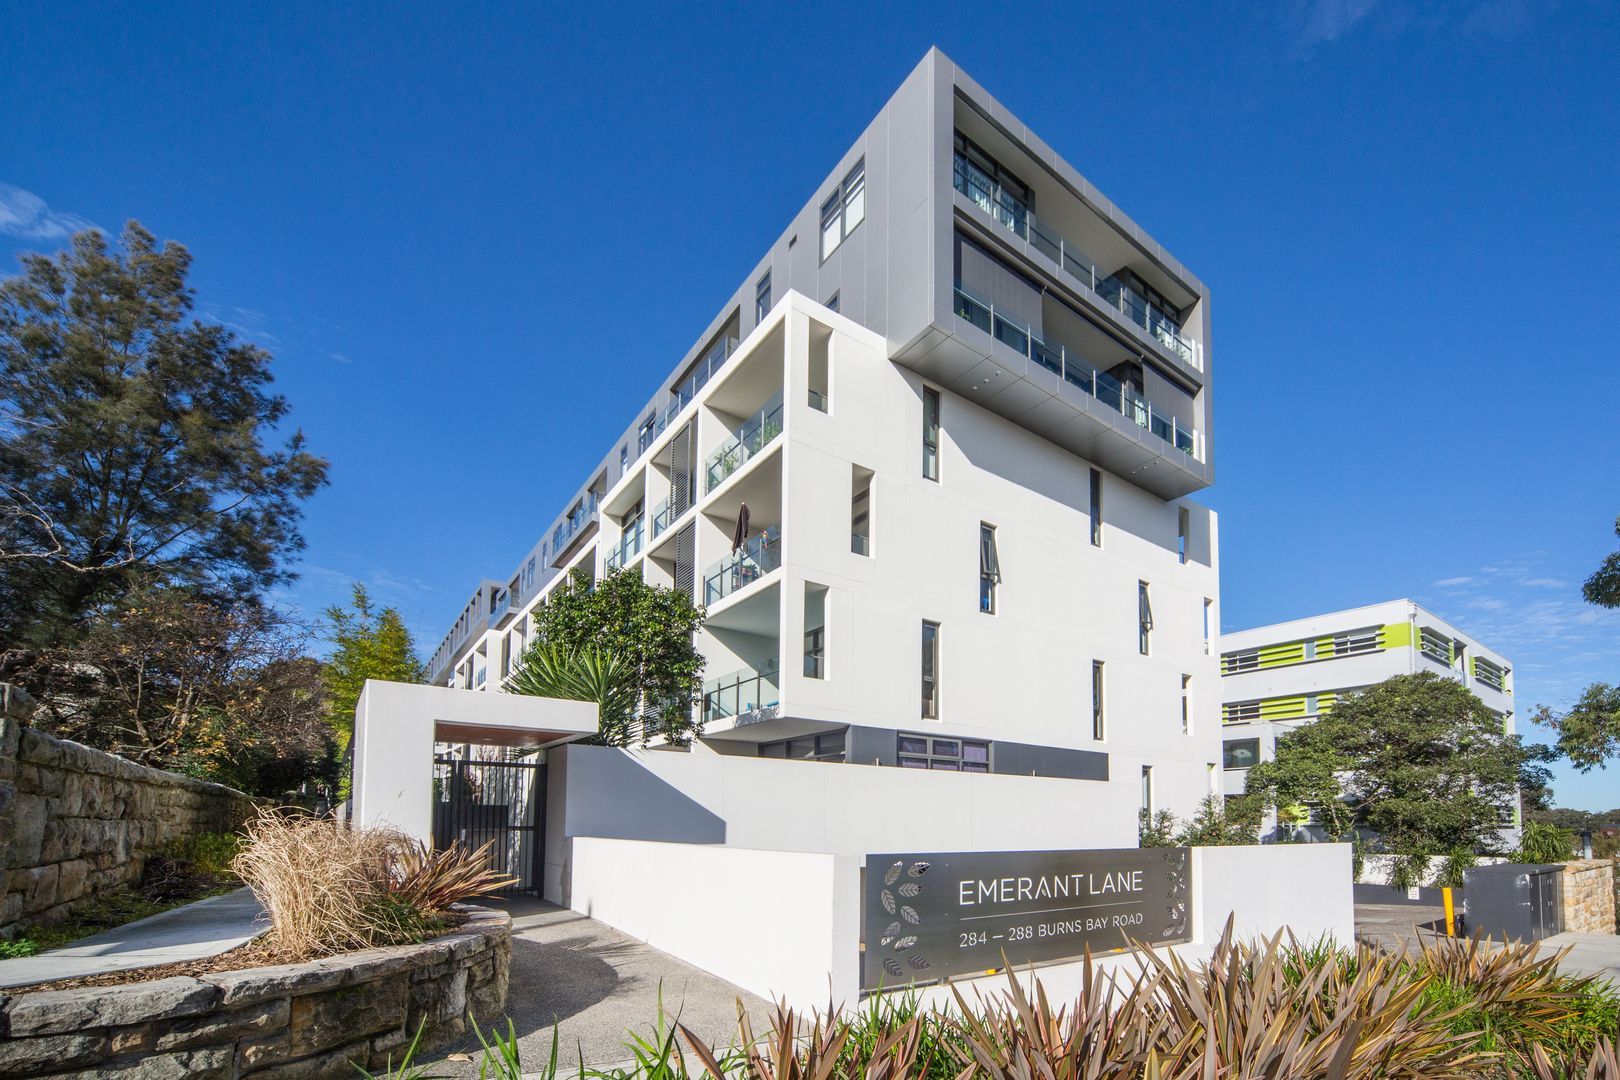 2507/288 Burns Bay Road, Lane Cove NSW 2066, Image 0